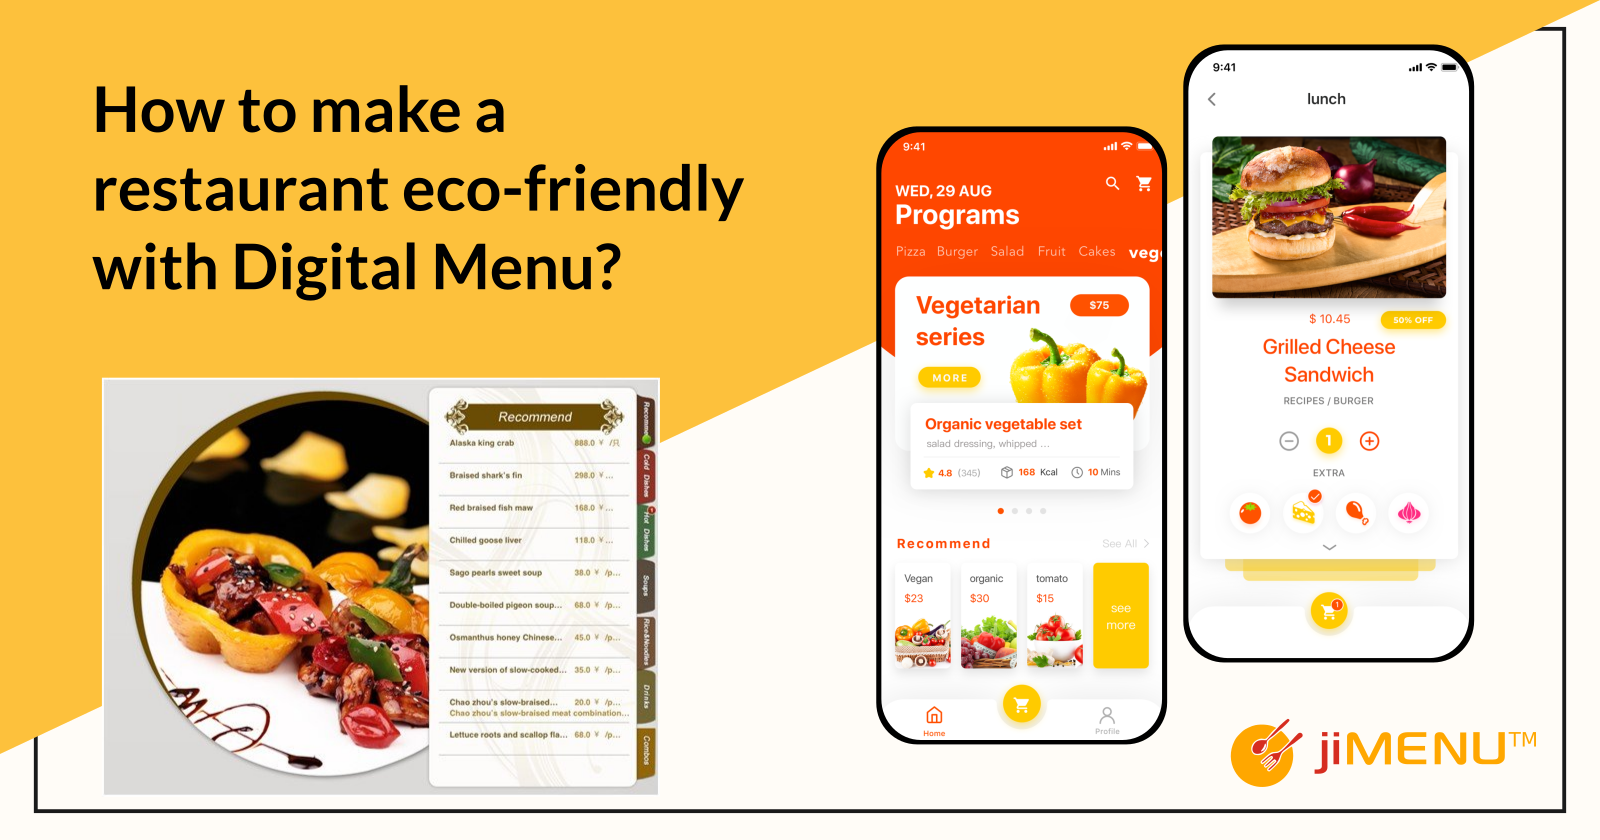 How To Make A Restaurant Eco-friendly With Digital Menu?